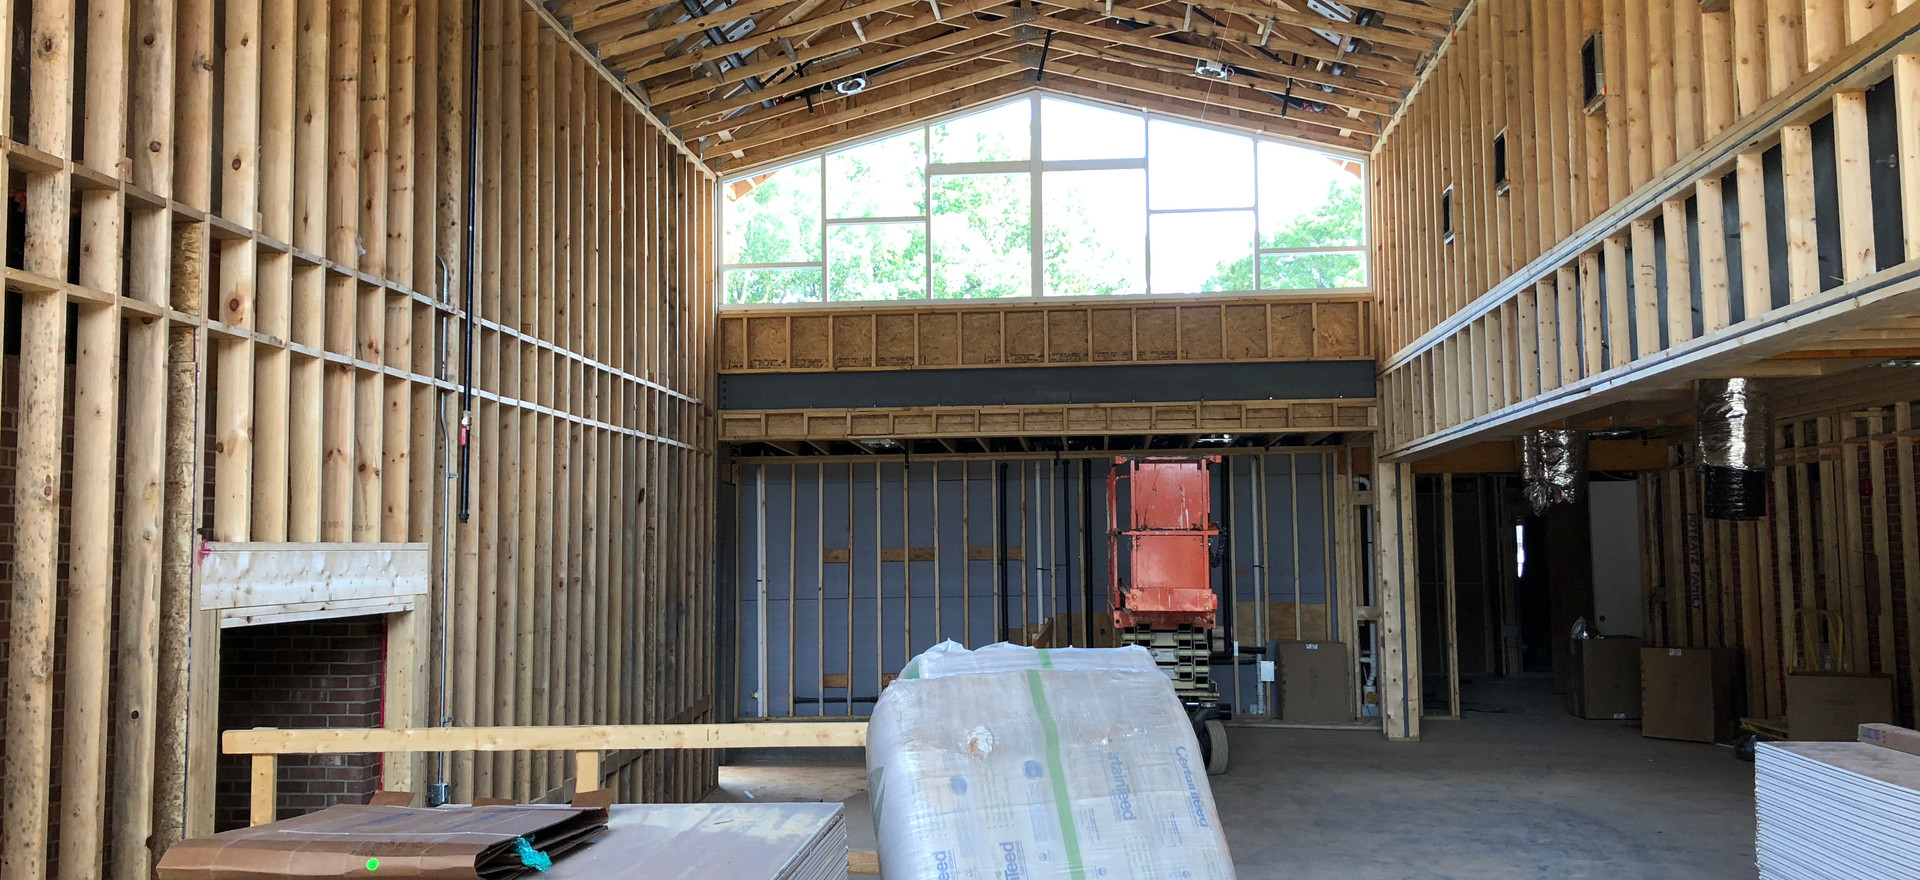 Welcome Center Window Frames Are In